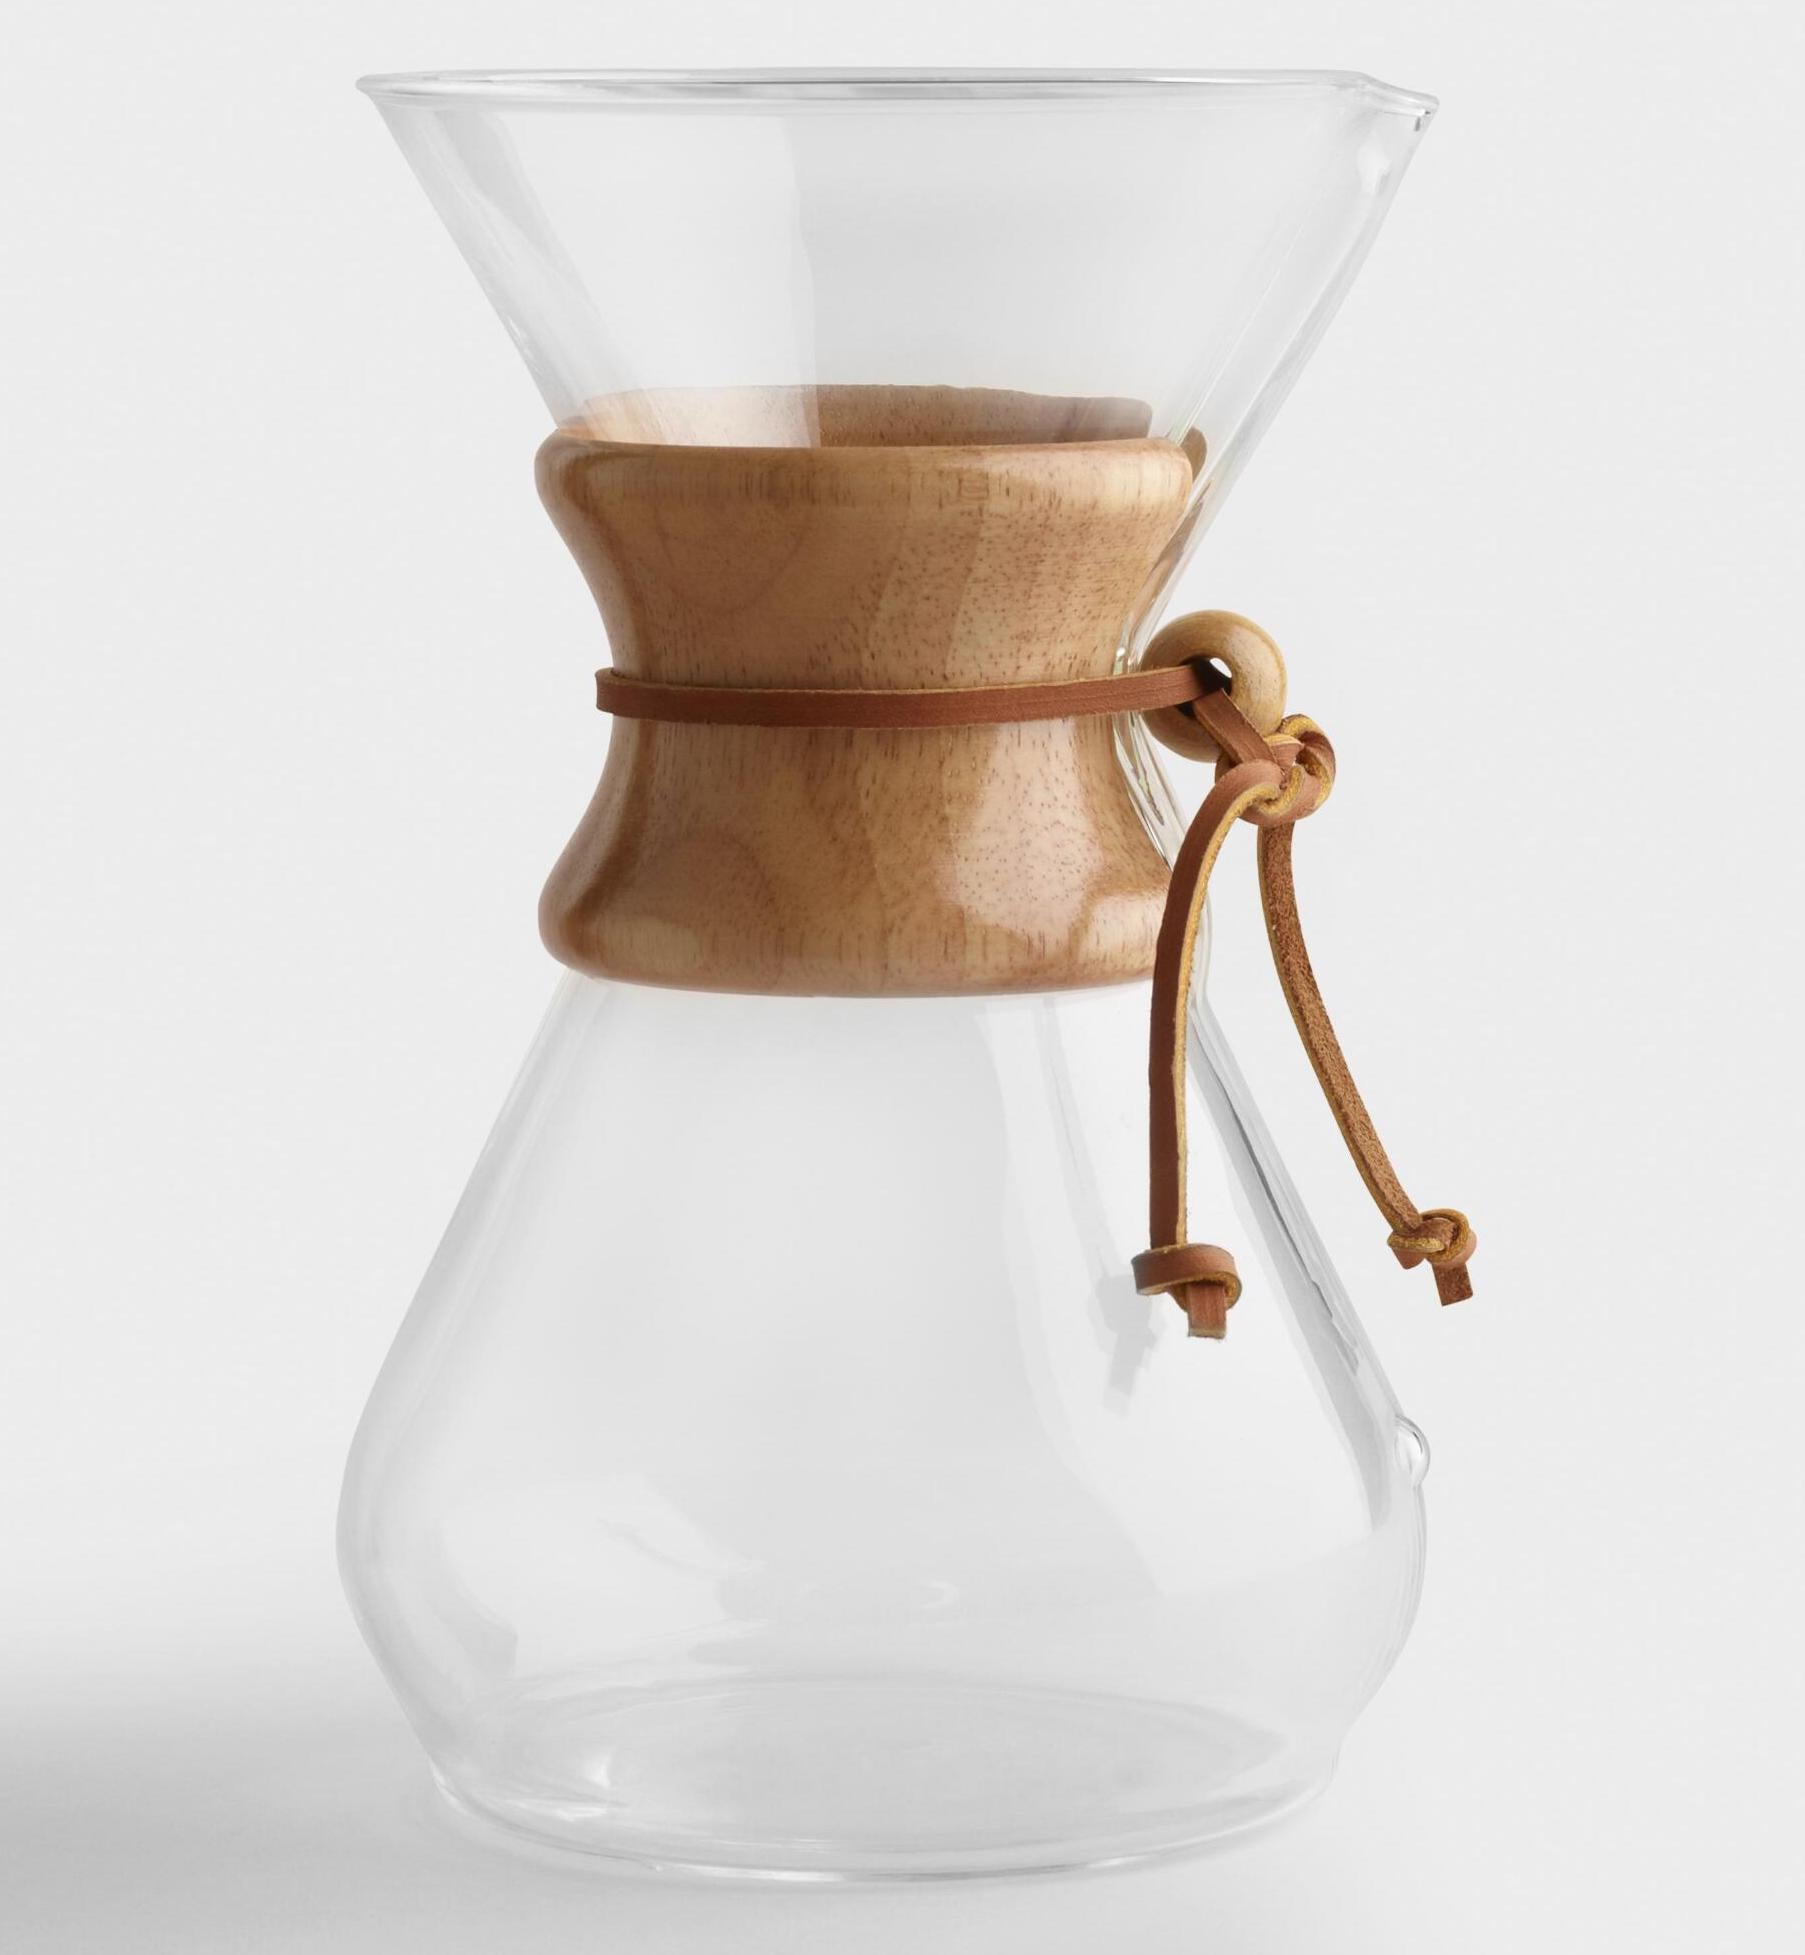 Chemex 8 Cup Glass Pour Over Coffee Maker